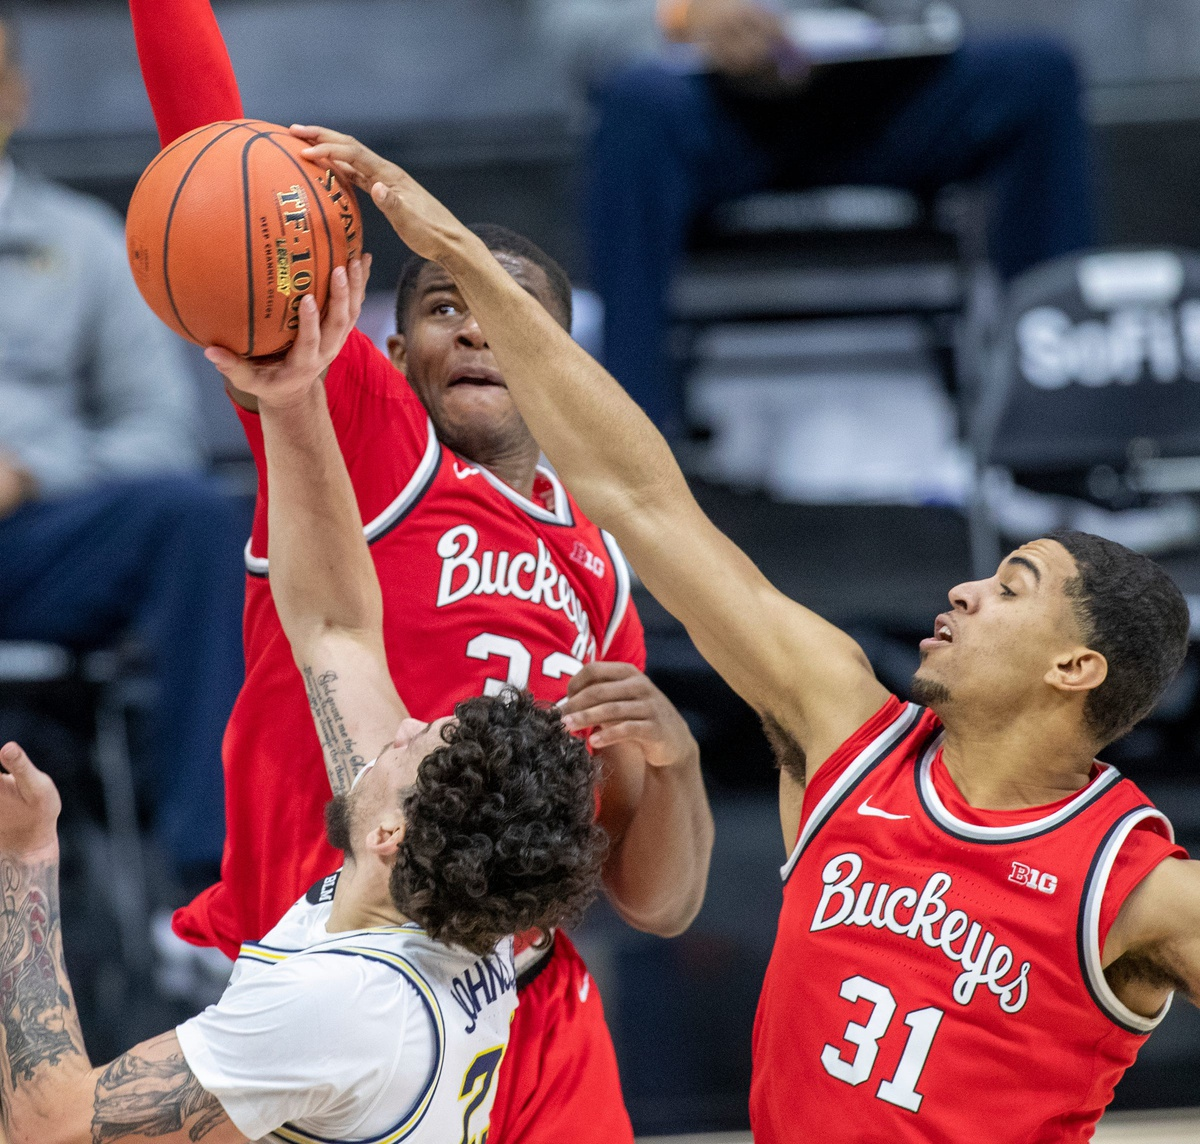 Ohio State Buckeyes forward Seth Towns (31) gets a block on Michigan Wolverines forward Brandon Johns Jr. (23) on Saturday, March 13, 2021, during the men's Big Ten basketball tournament from Lucas Oil Stadium. Ohio State Buckeyes beat Michigan Wolverines 68-67.